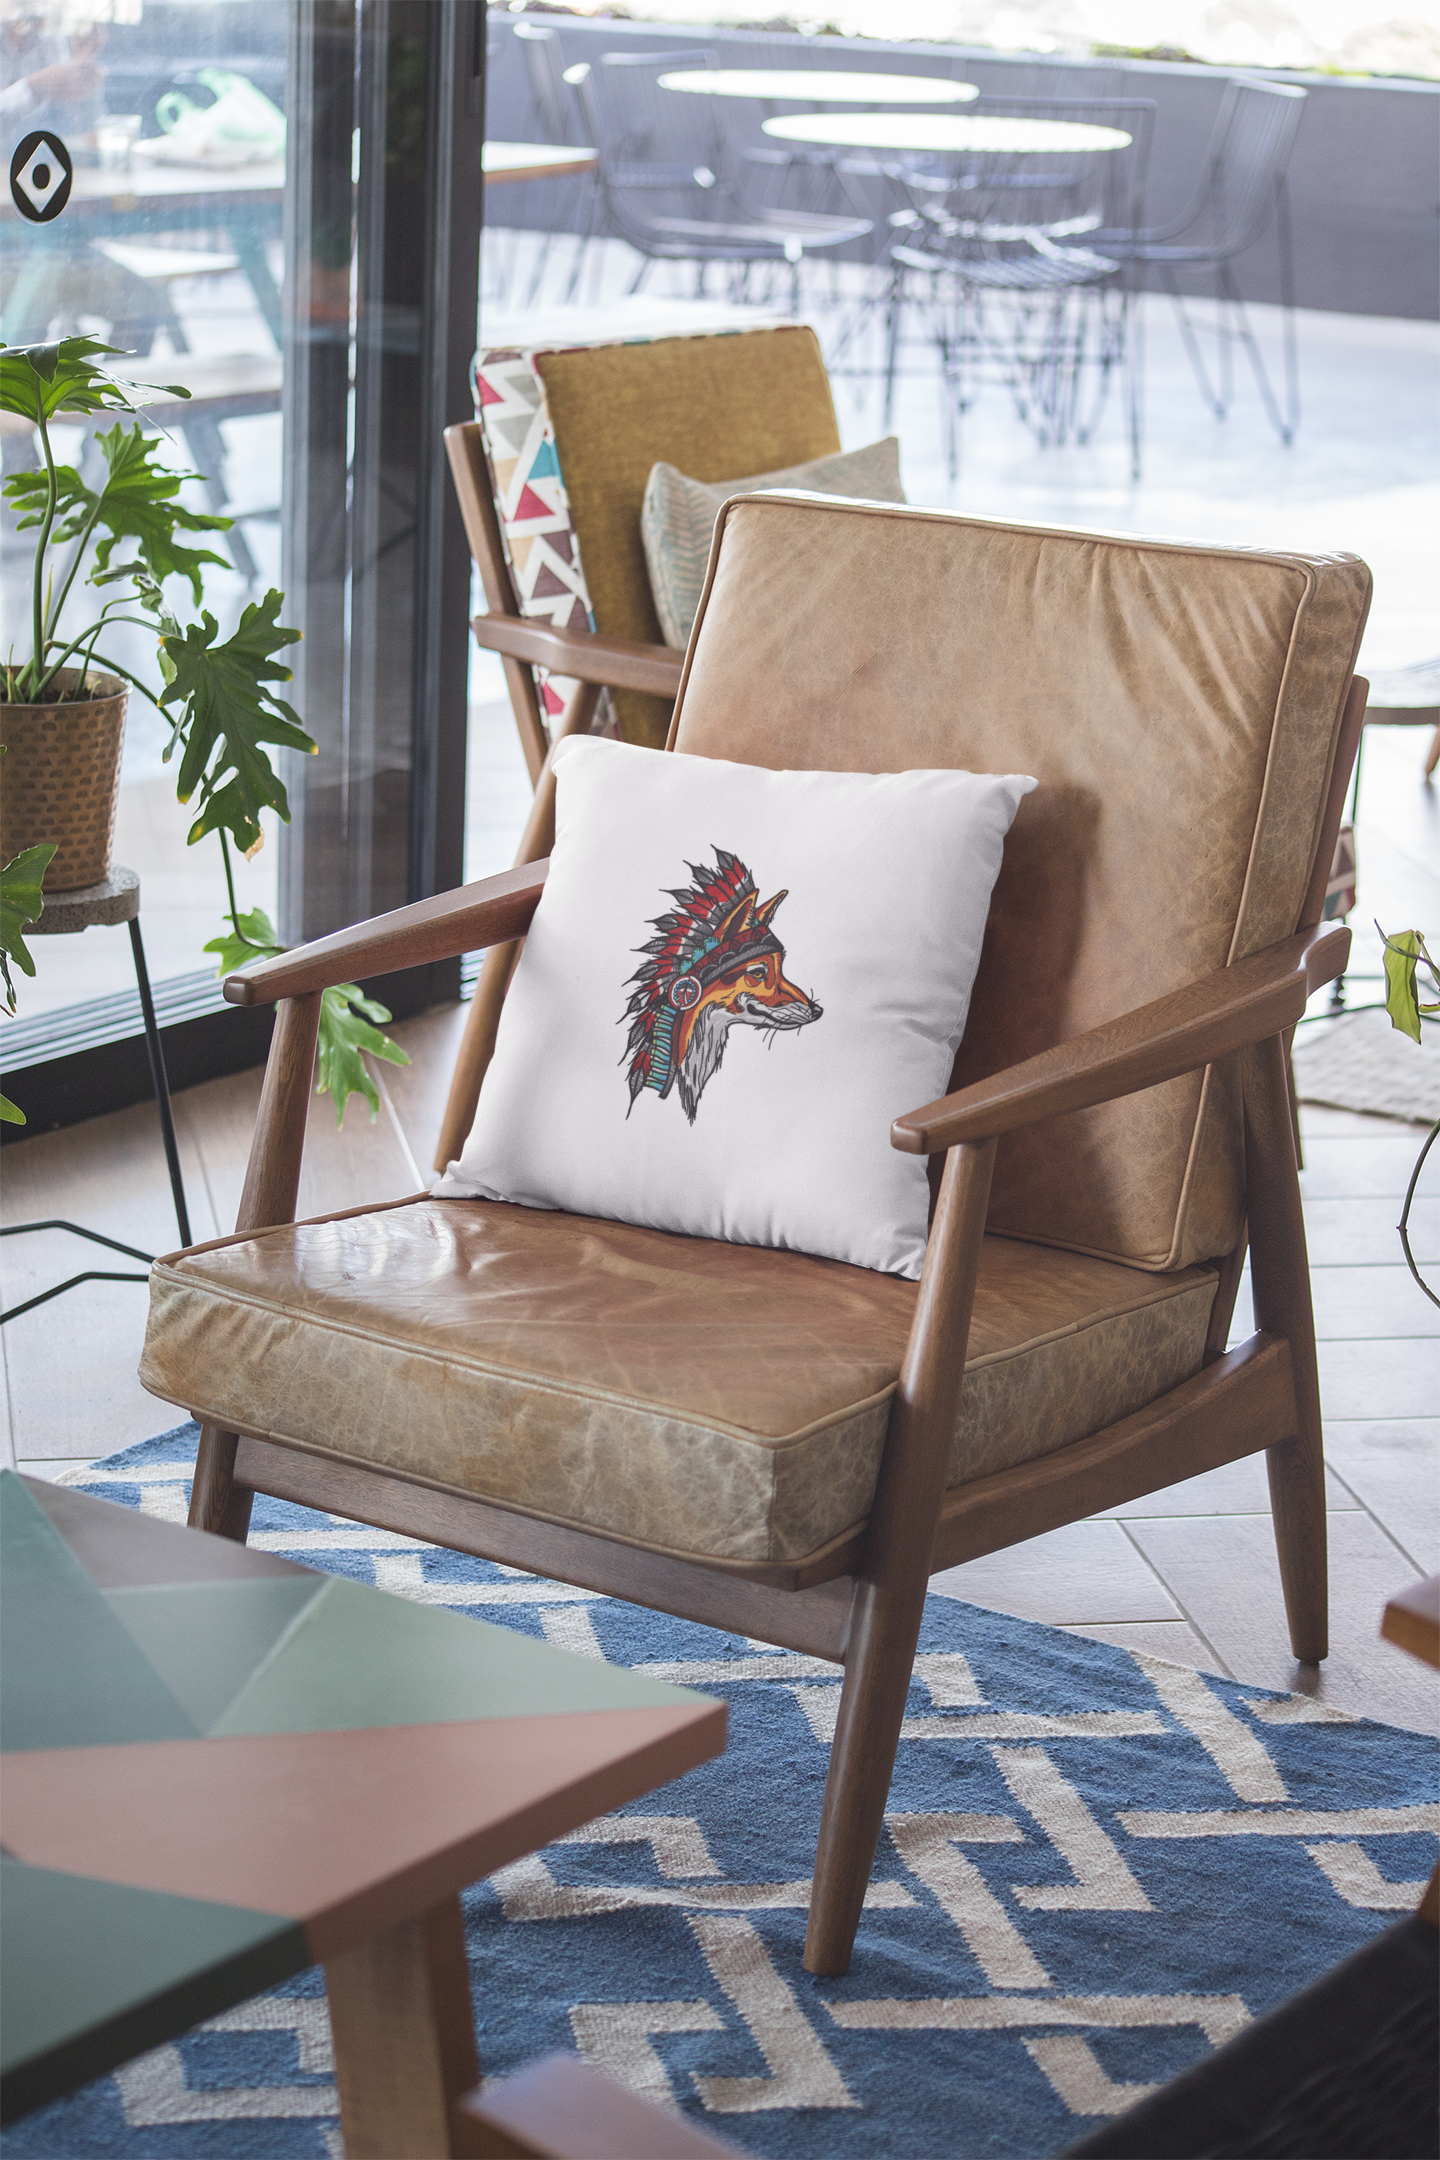 Embroidered cushion with Indian fox design